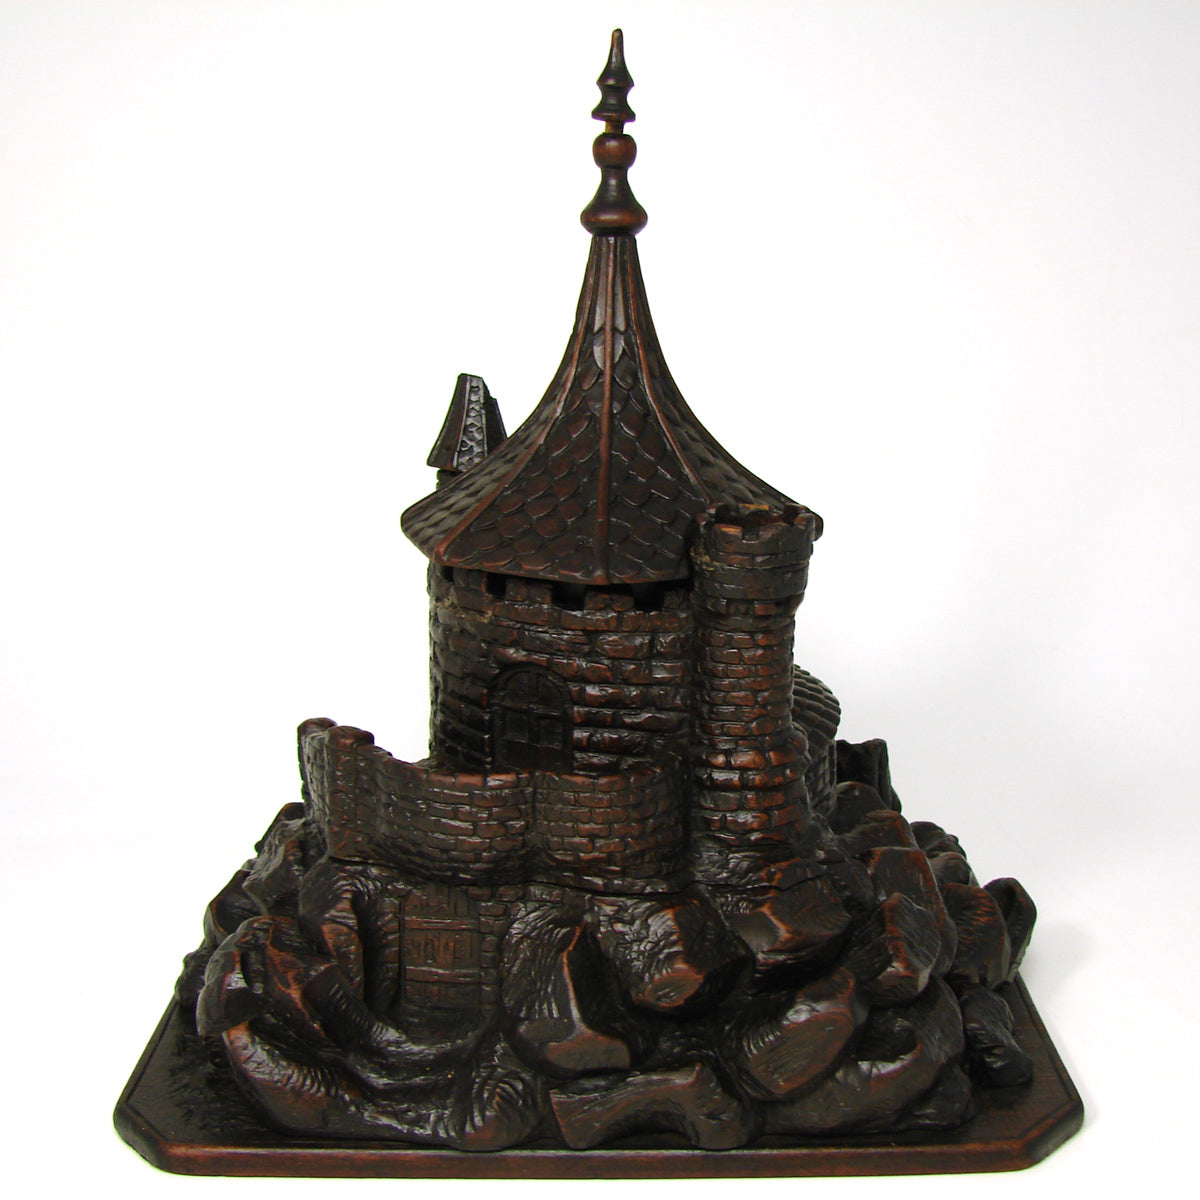 Fab Antique Black Forest Smoker's Stand, Medieval Tower or Castle, Tobacco Jar